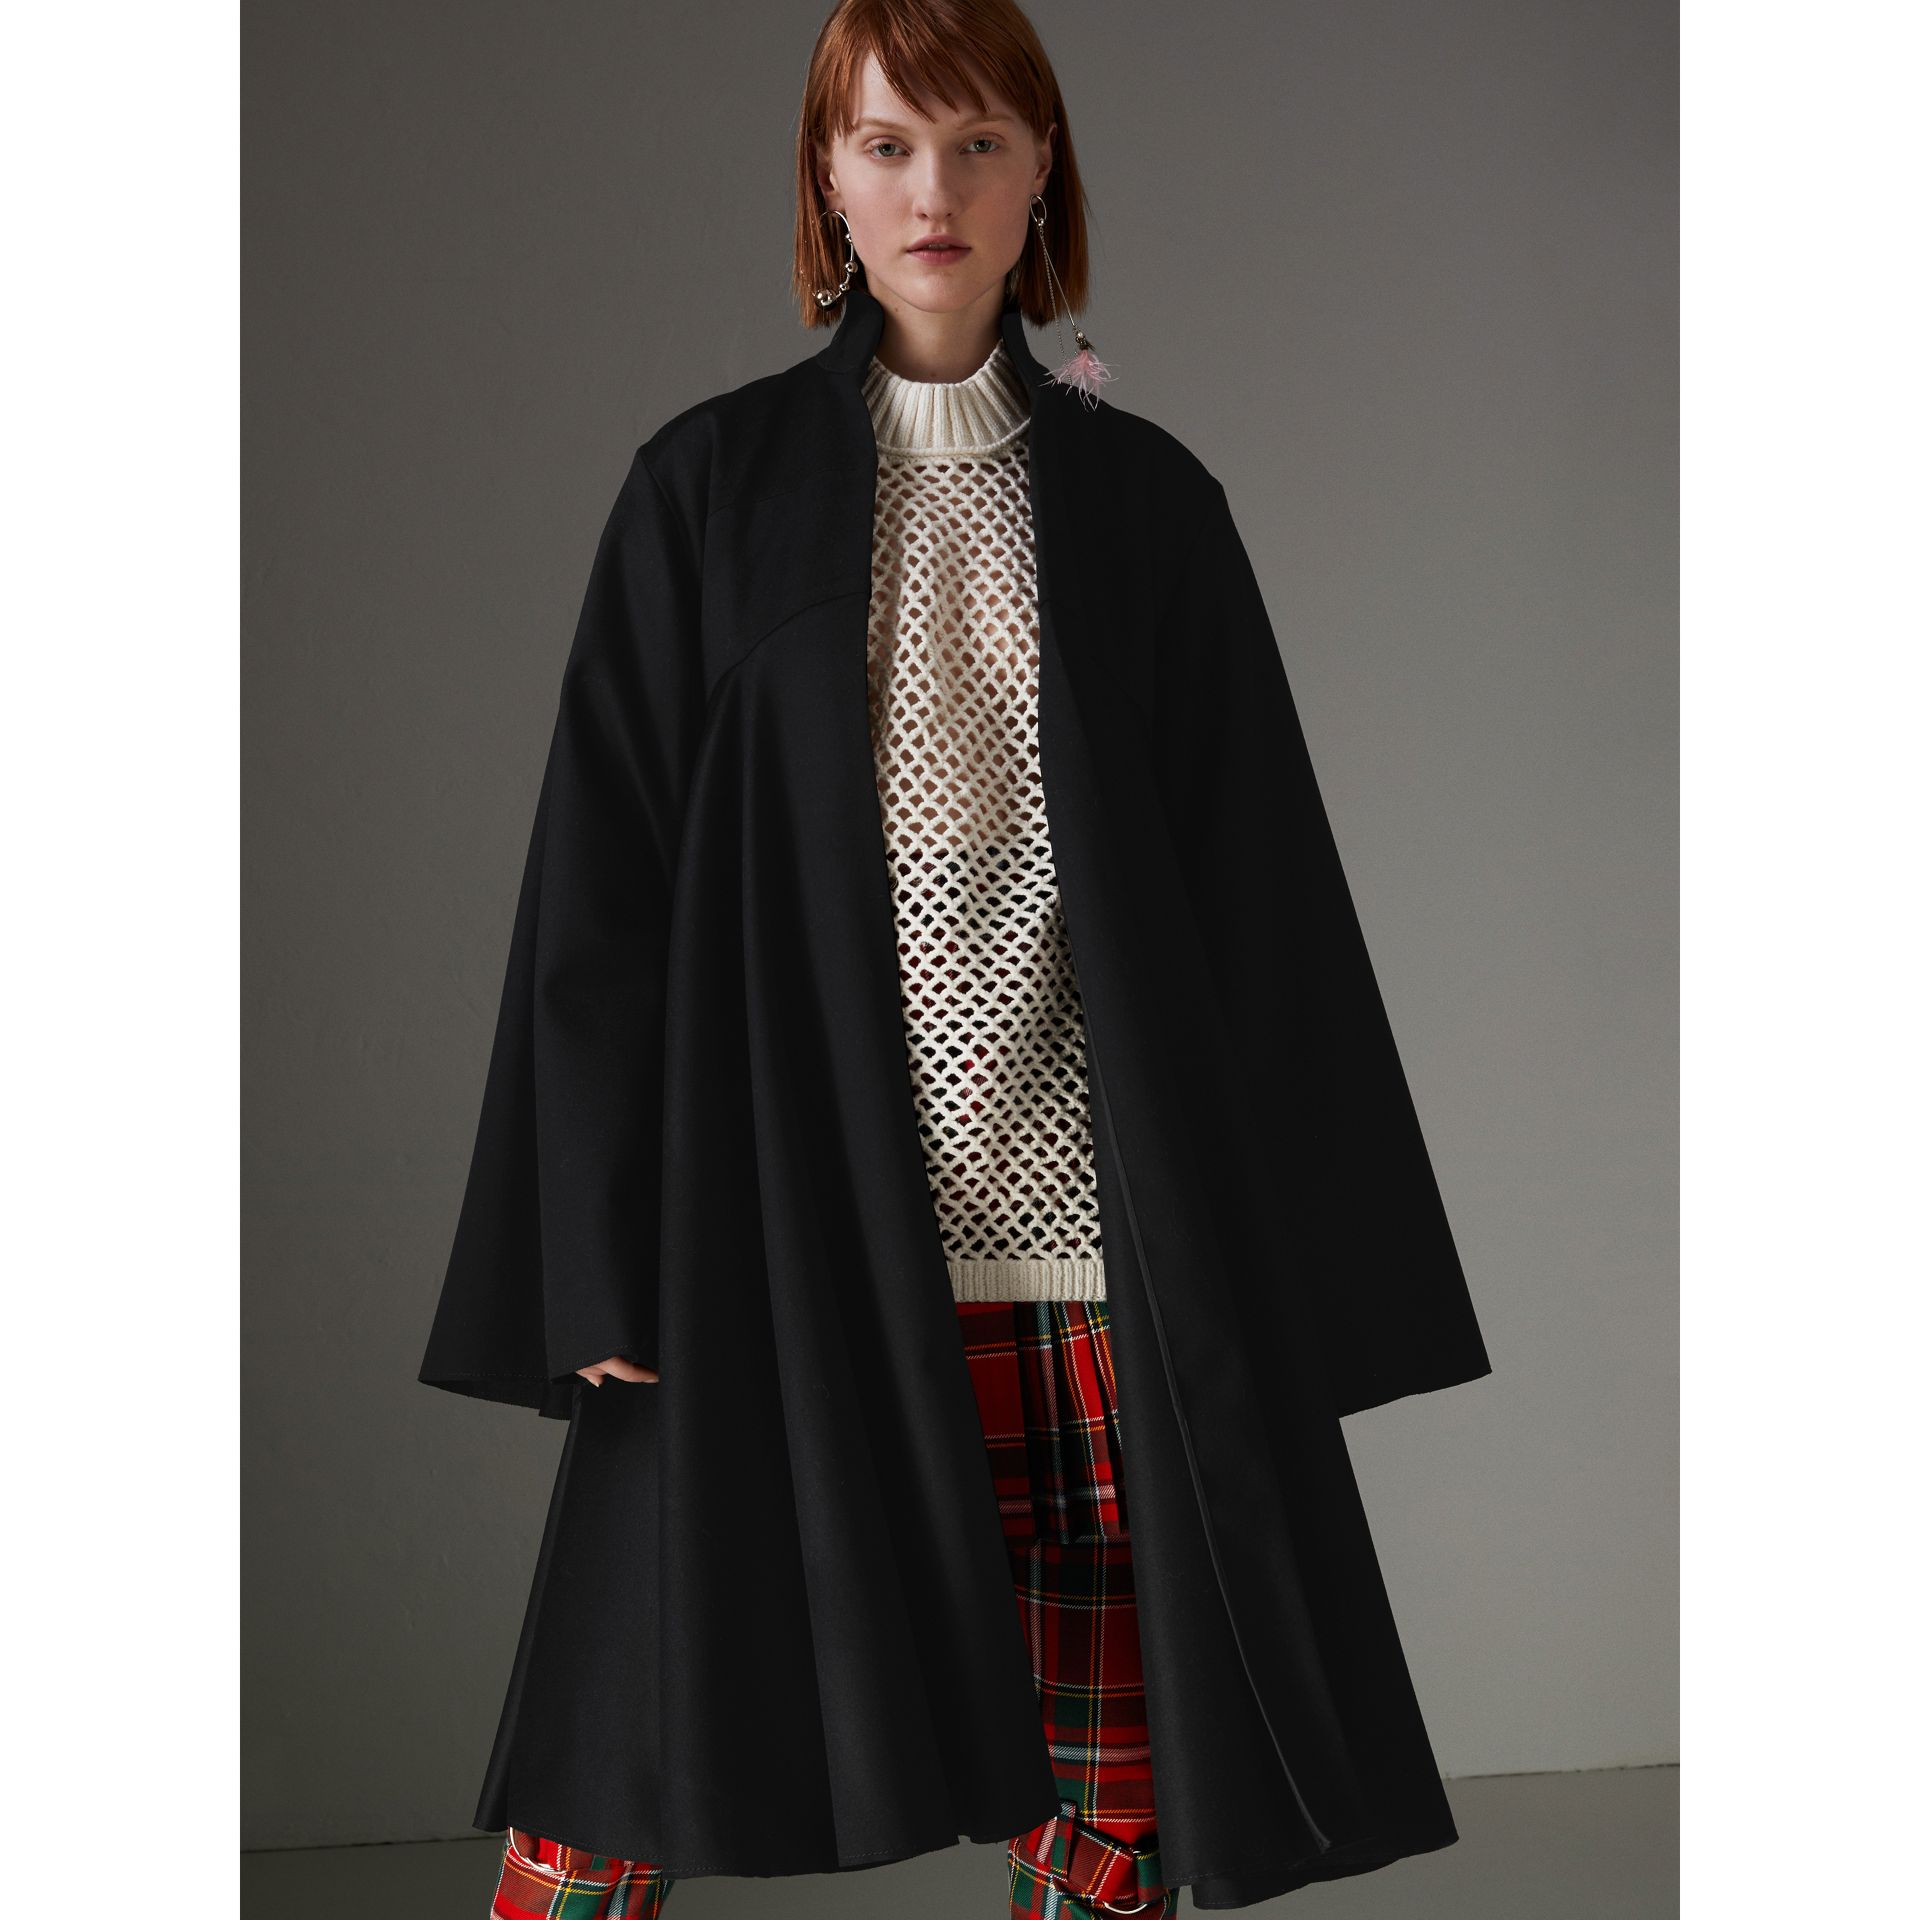 Tailored Doeskin Wool Cape in Black - Women | Burberry Canada - gallery image 4